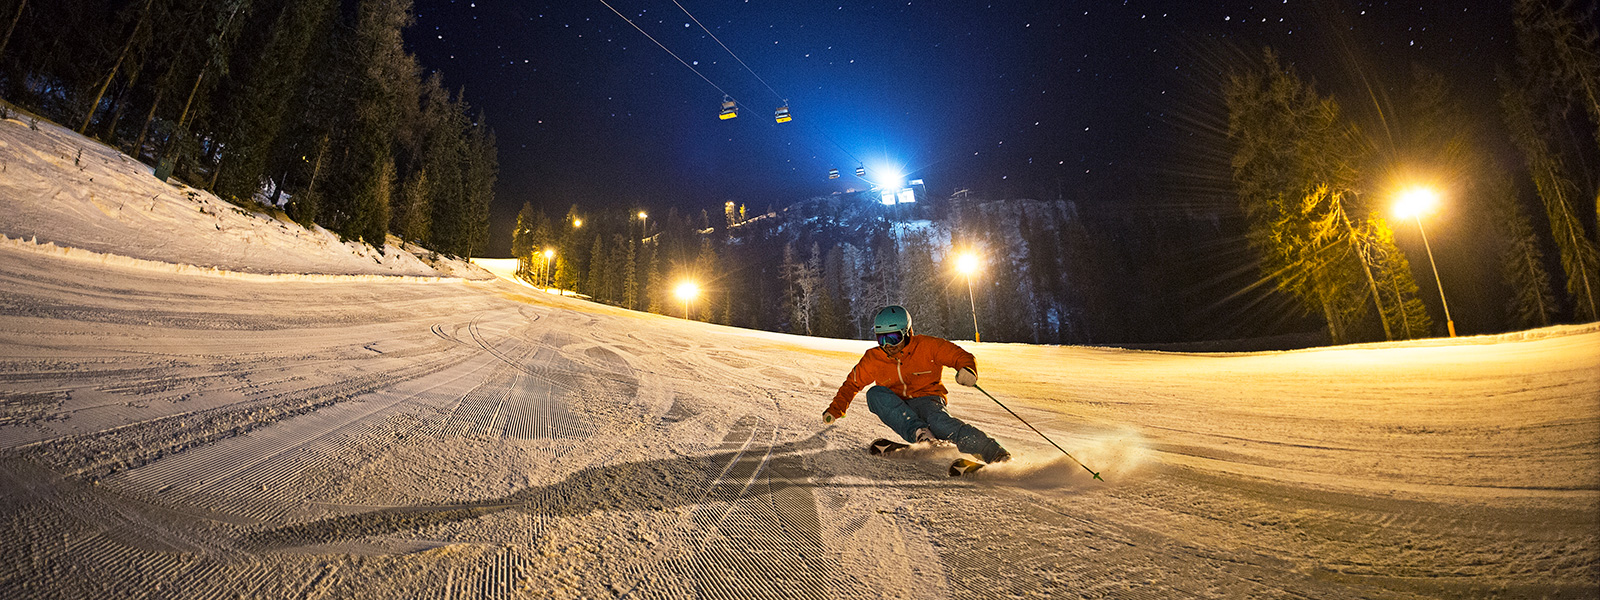 Perfectly groomed piste during night skiing on the Hochwurzen